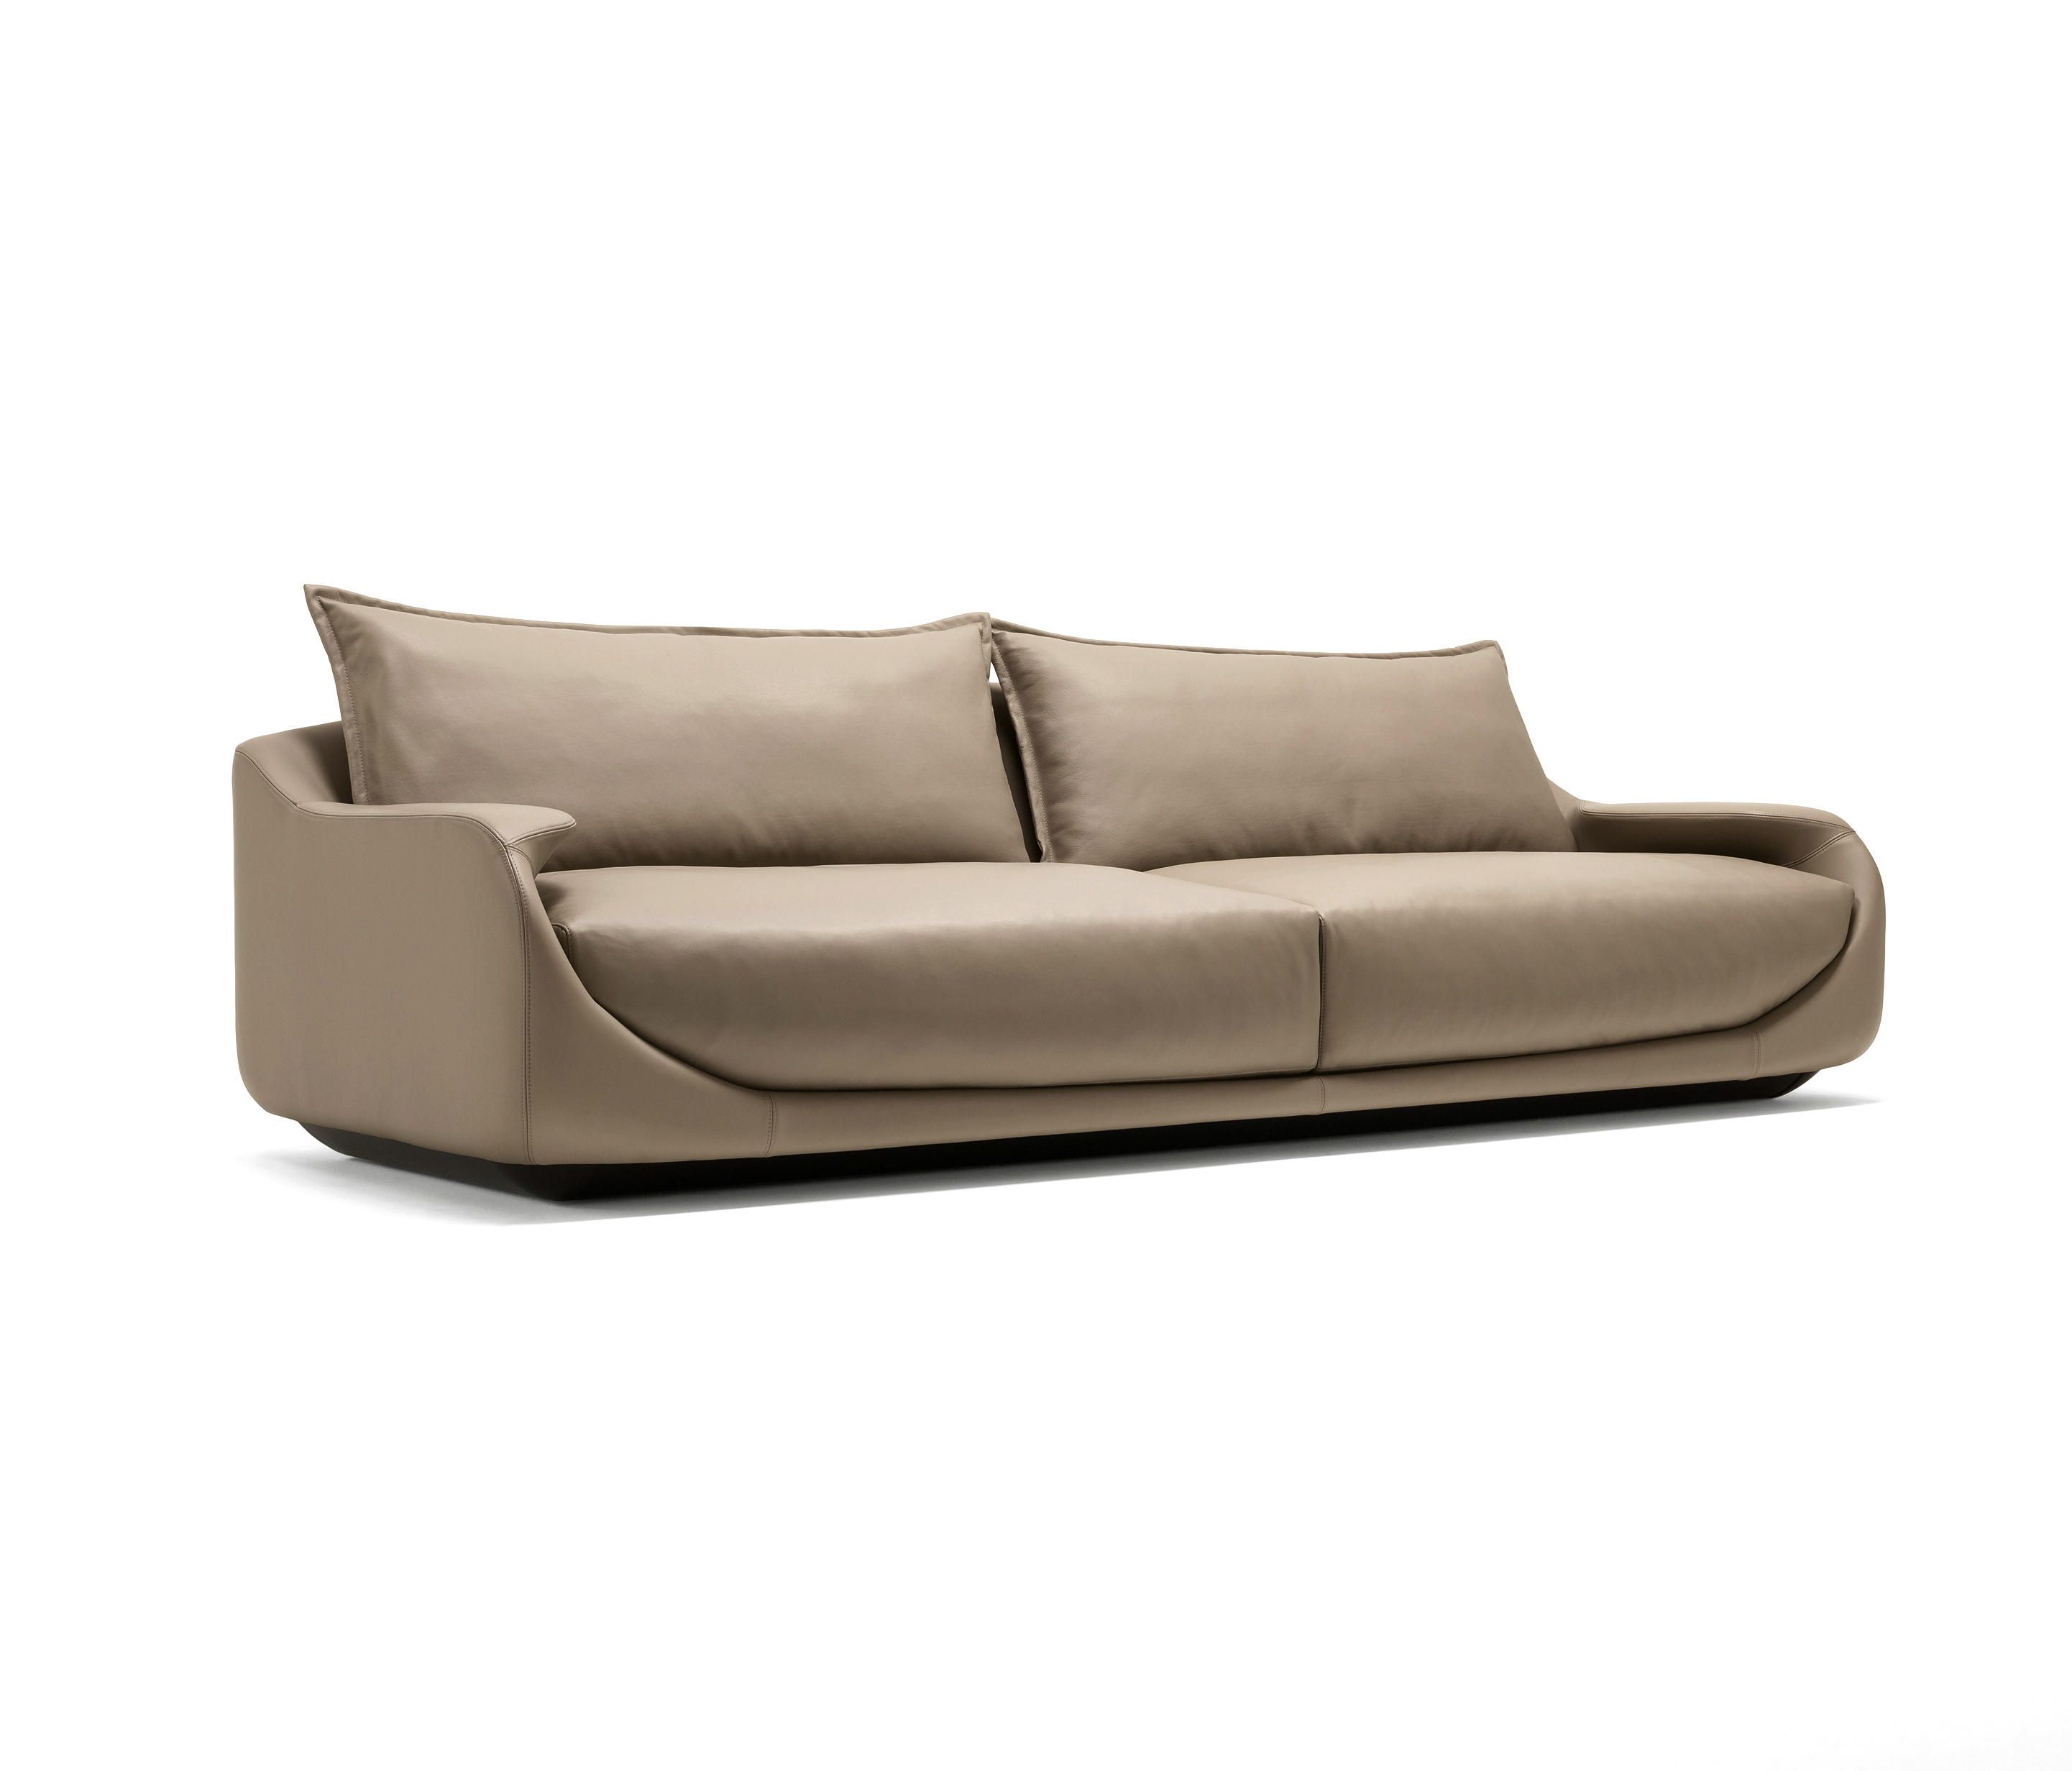 All about Martini Two-seat Sofa by Giorgetti on Architonic. Find pictures & detailed information about retailers, contact ways & request options..